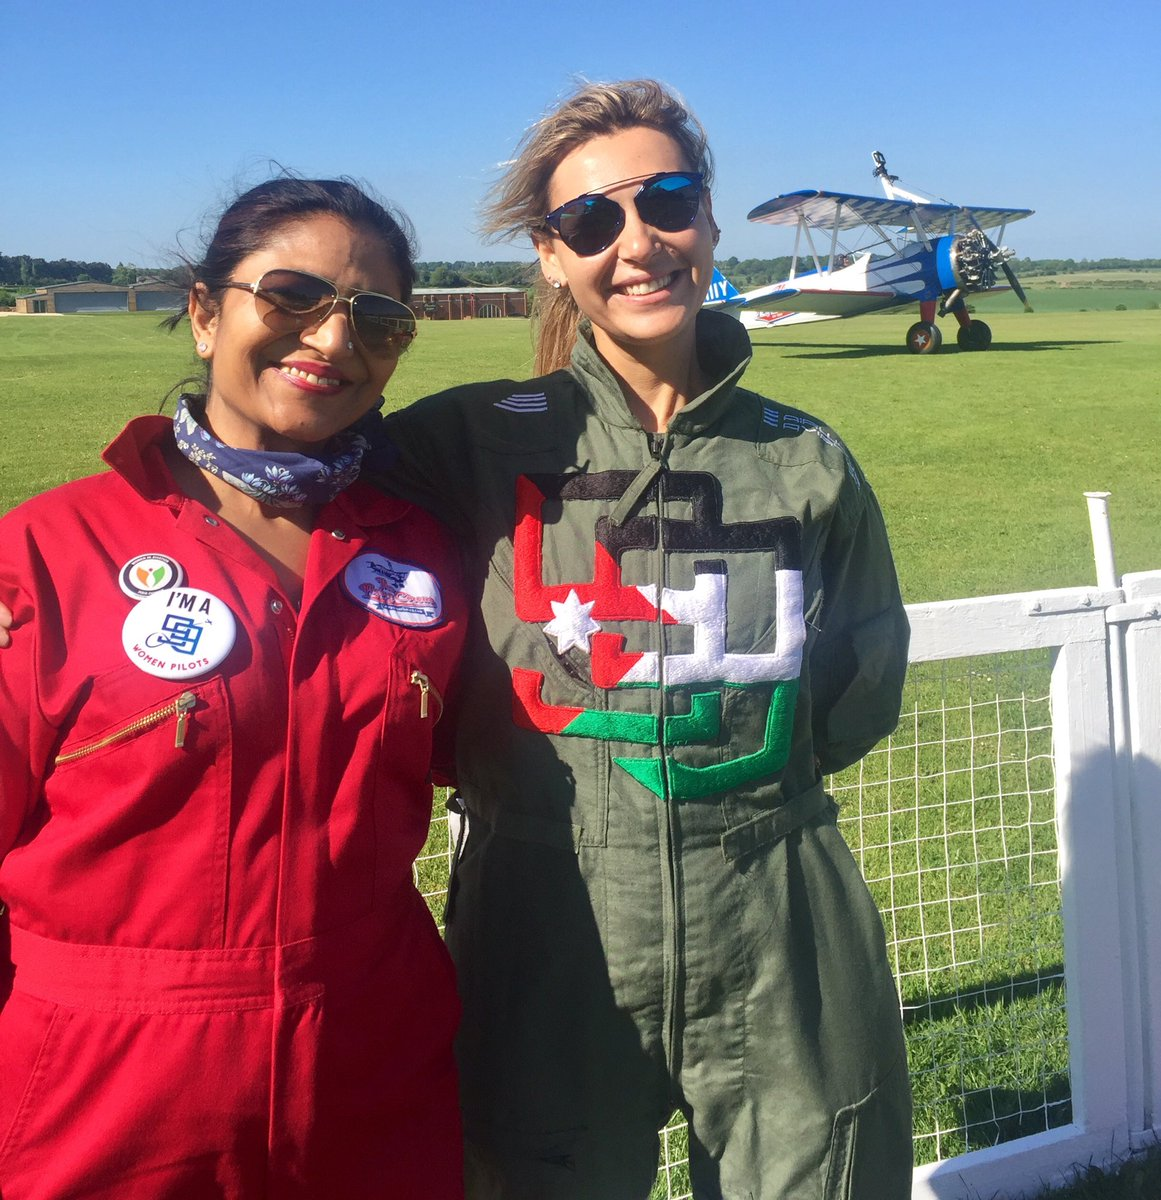 Two proud #99s after wingwalking 4 @Aerobility #Fundraising 4 #Disability #IndiaSection99s #Arabian99s<br>http://pic.twitter.com/bpVwBchM0t